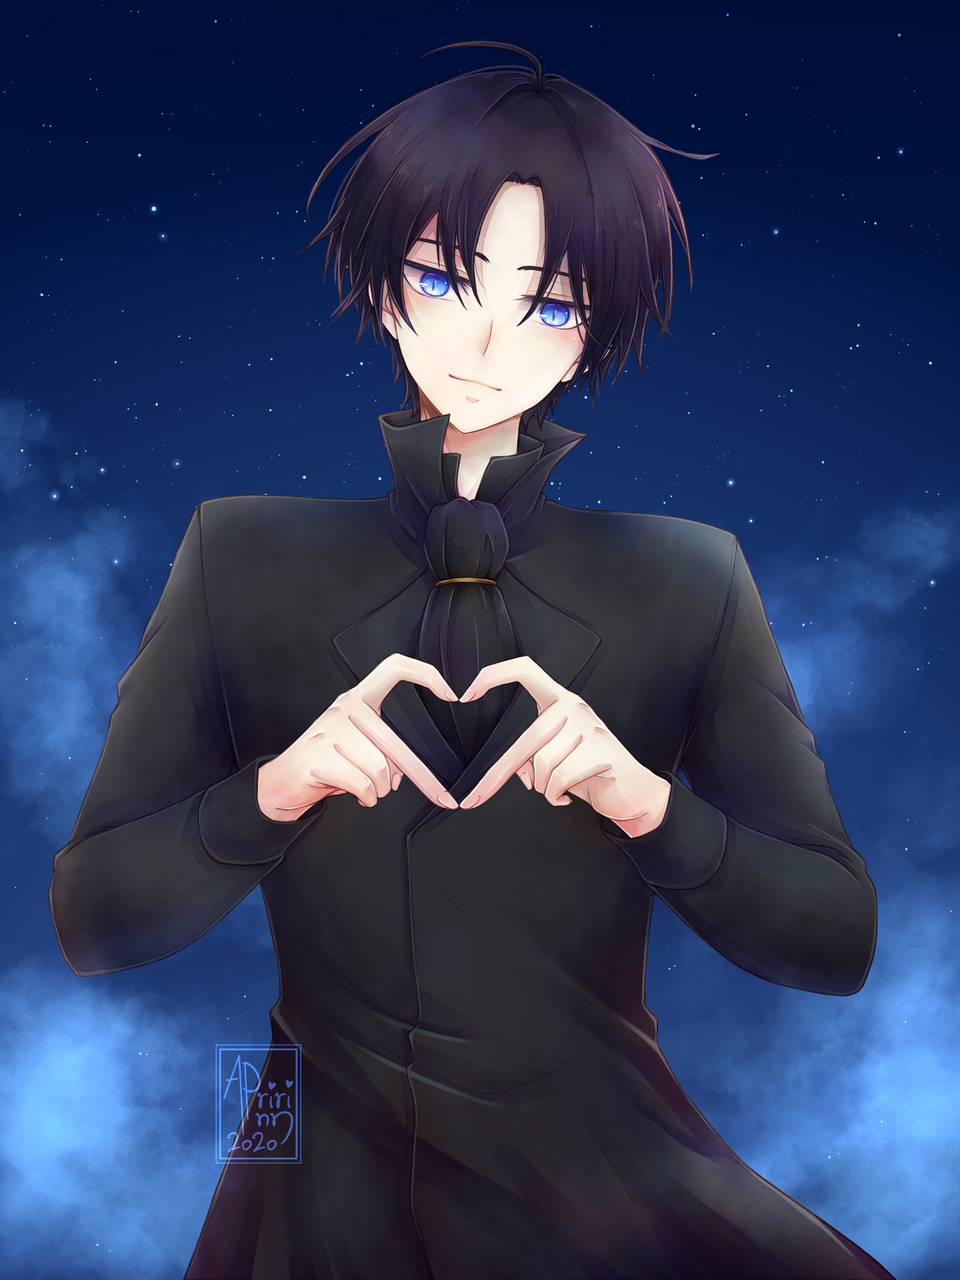 Rood heart Illust of Apririnn (Onigiri) ARTstreet_Ranking guy BlackHaze fanart Manhwa coat blueeyes heart raffleprize blackhair nightsky